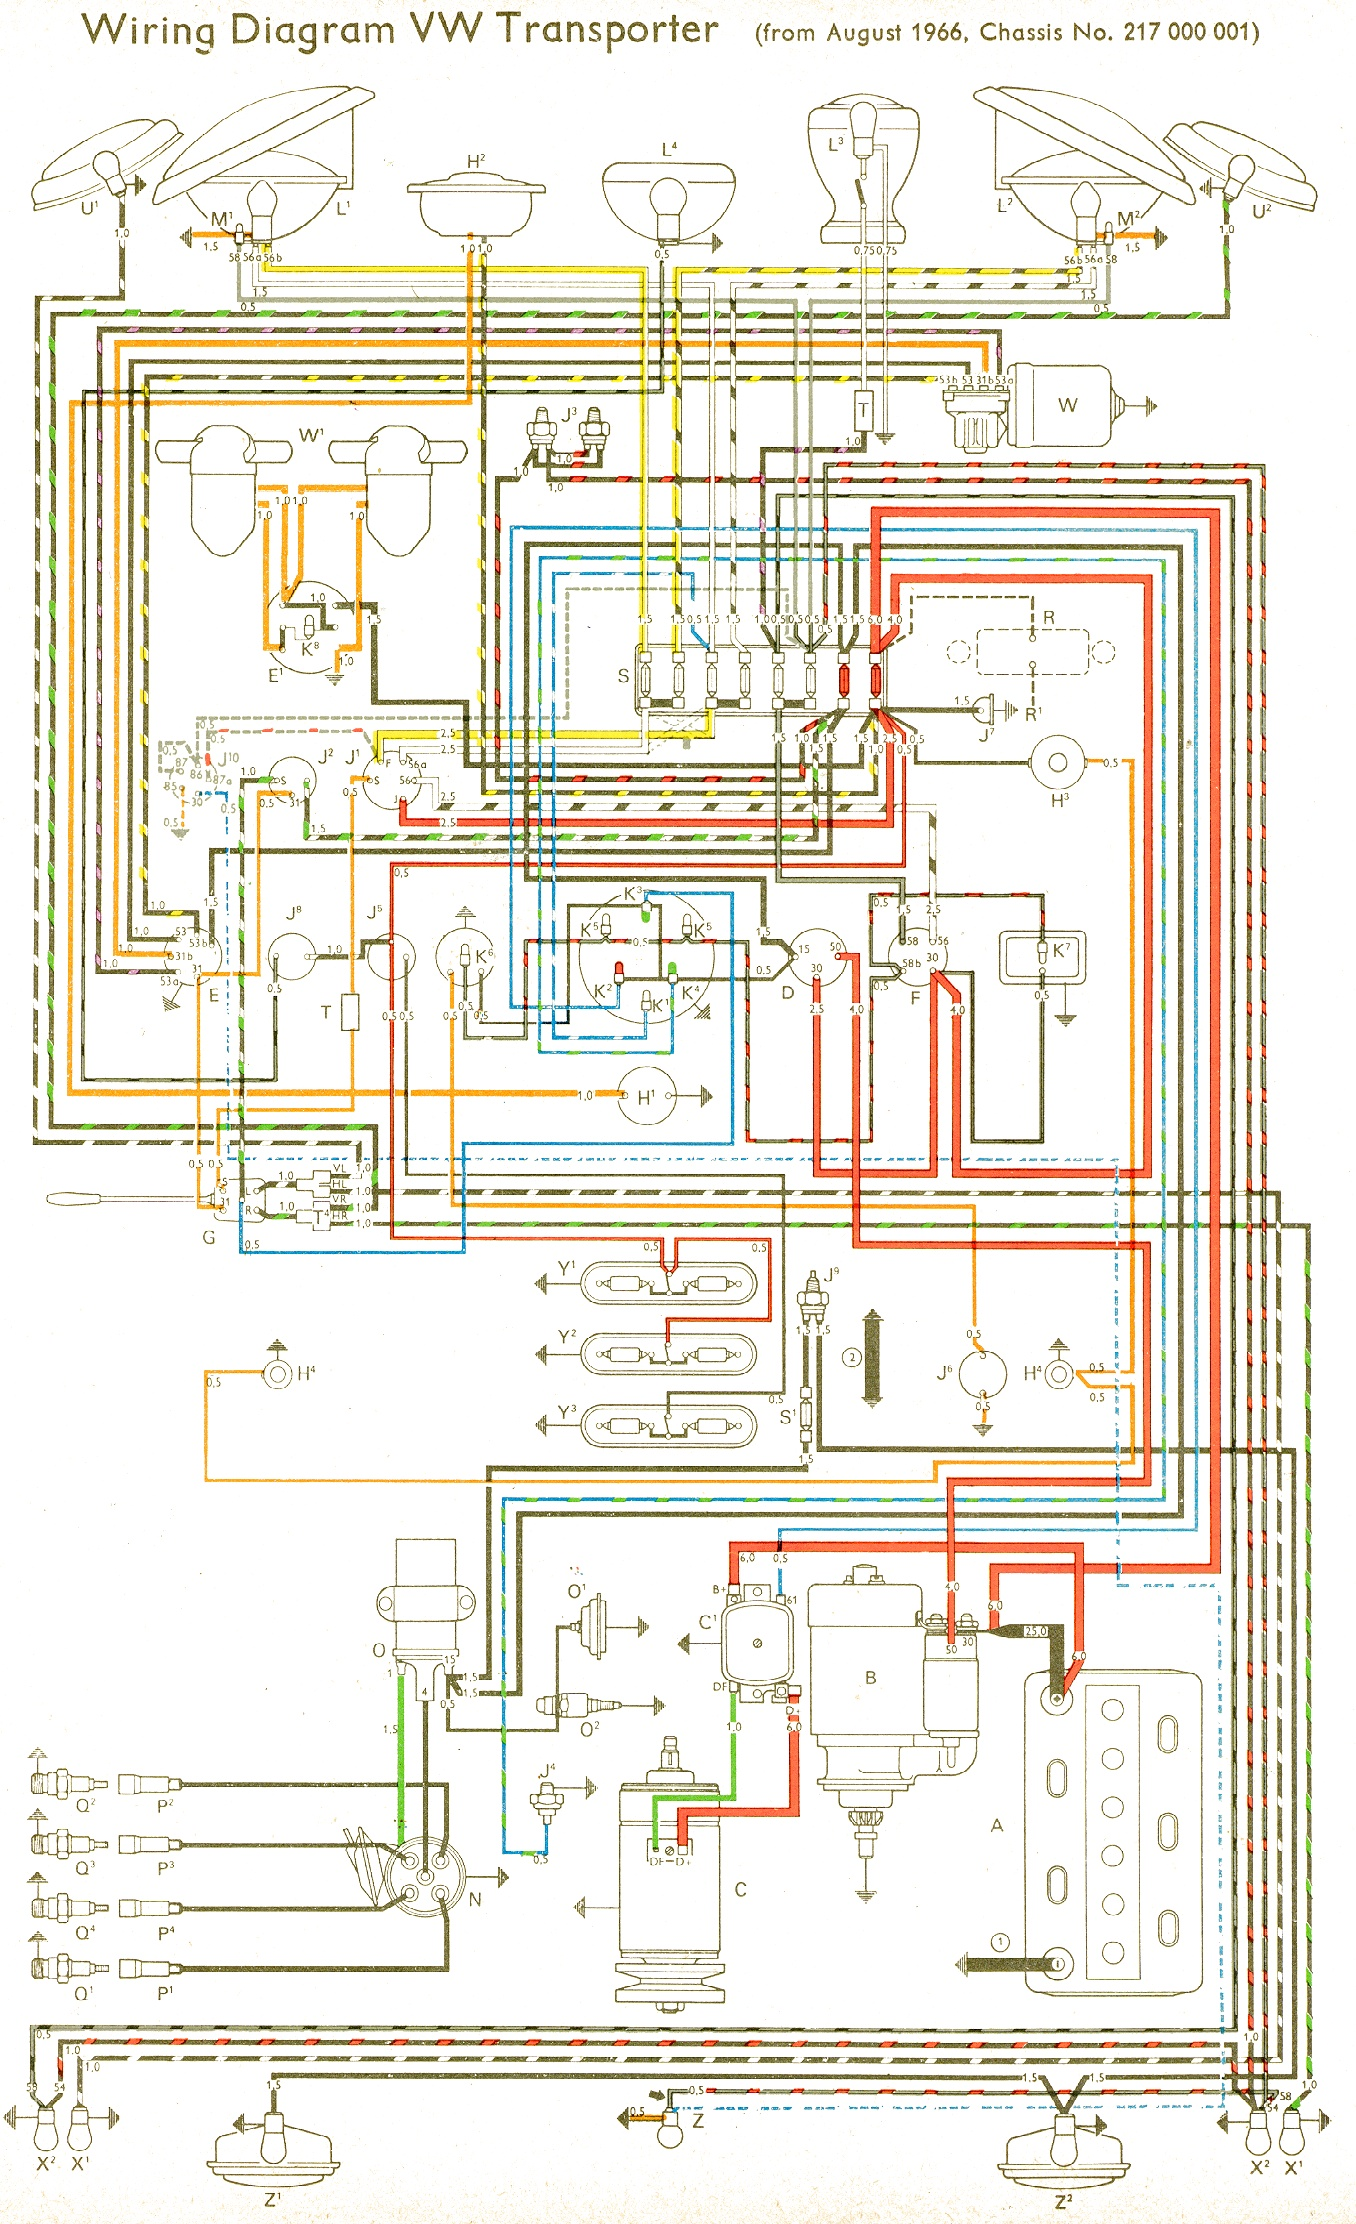 WRG-7297] 2008 Vw Beetle Wiring Diagrams Free Download Diagrammx.tl